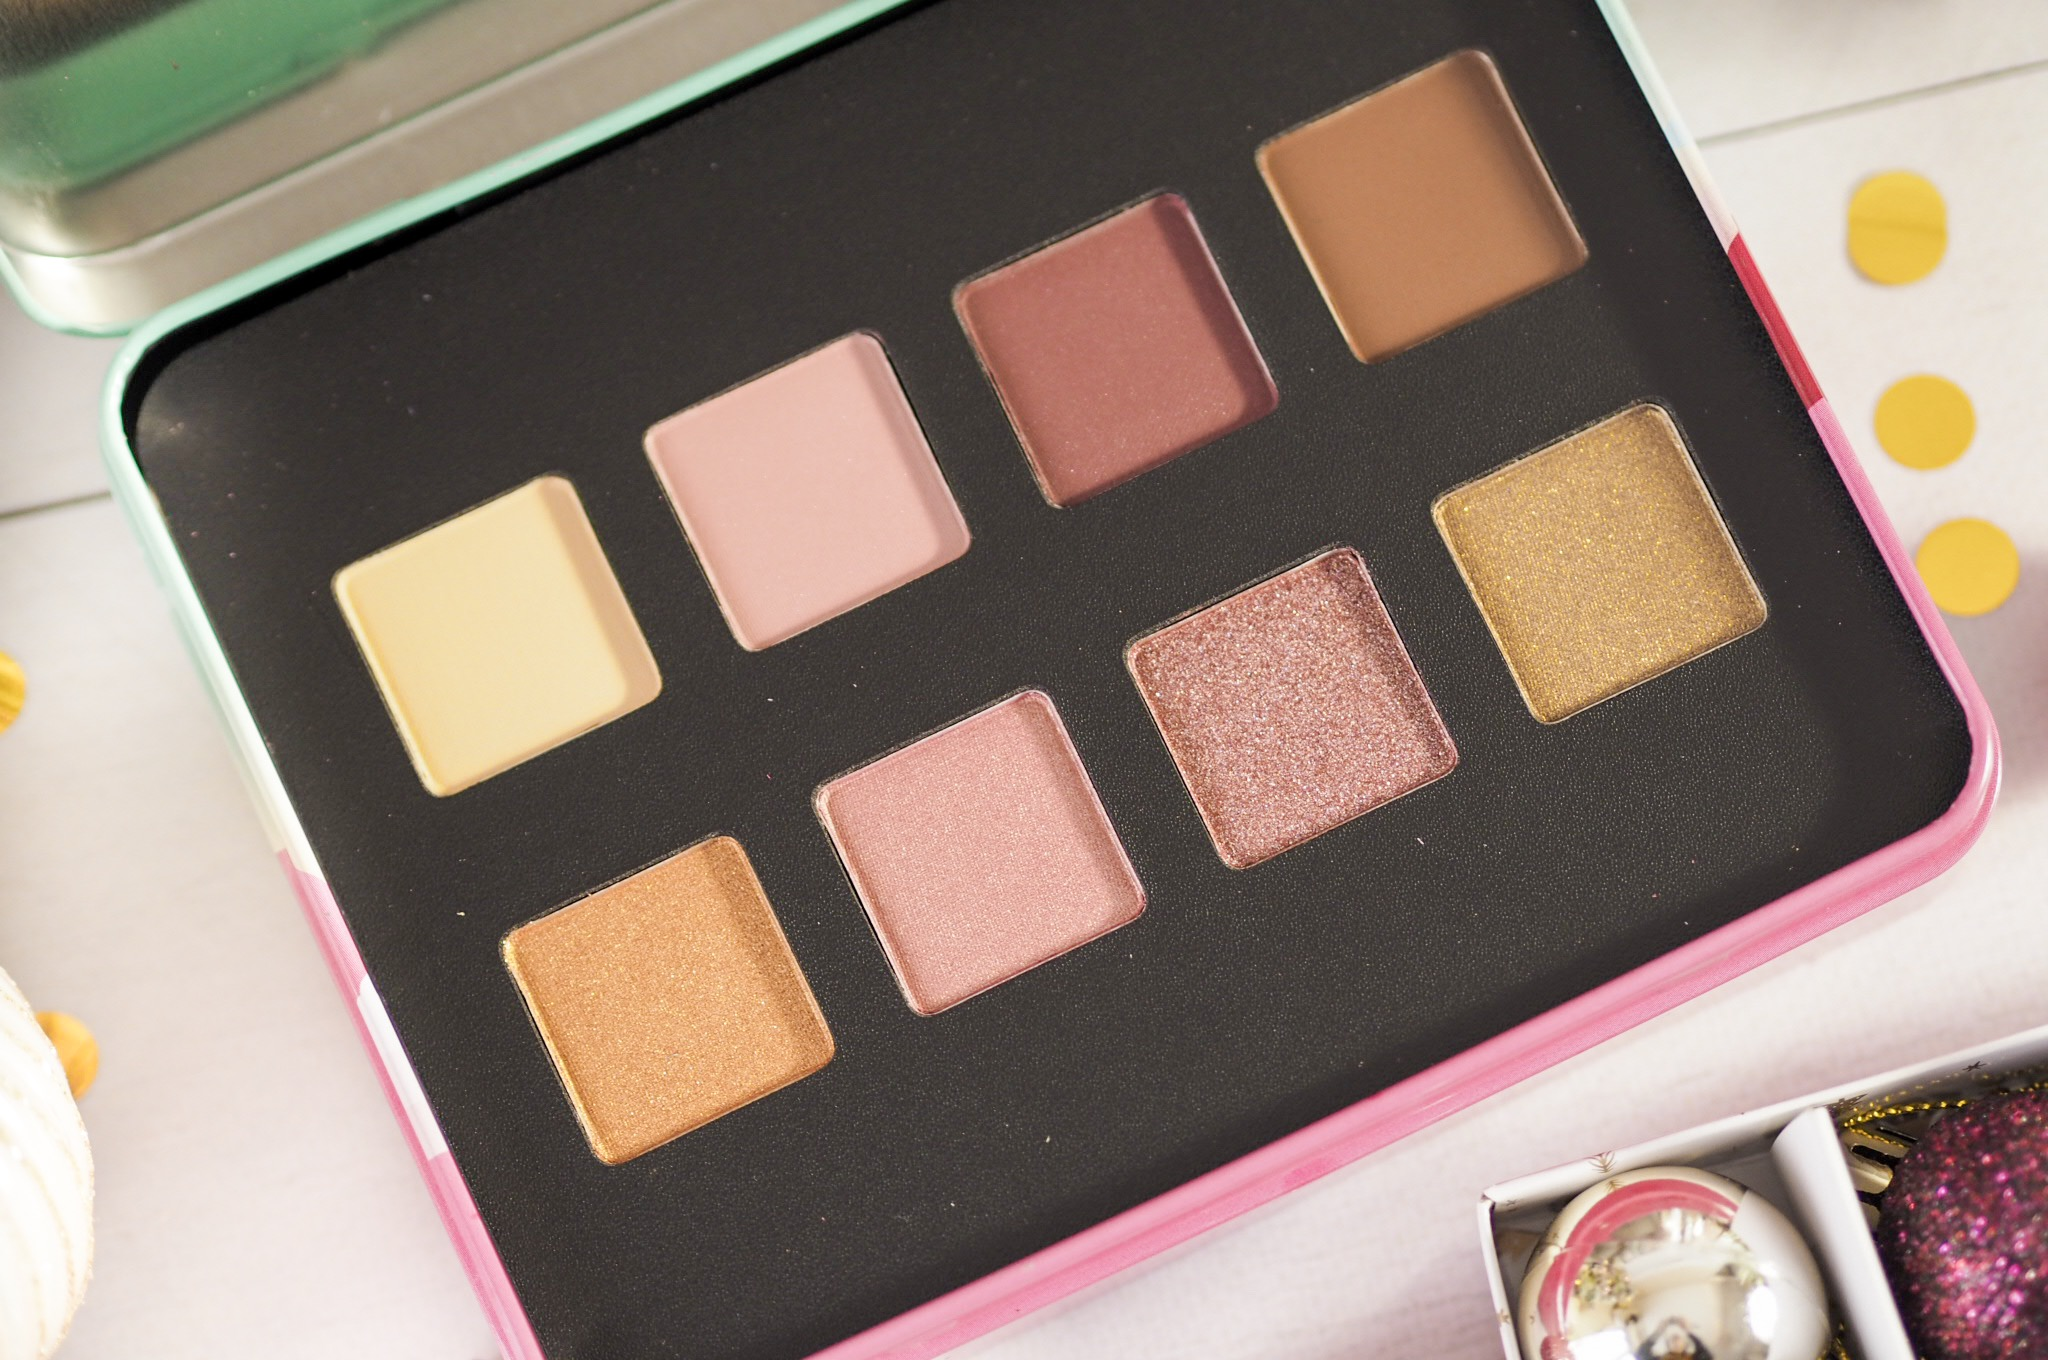 NYX Whipped Wonderland Eyeshadow palette